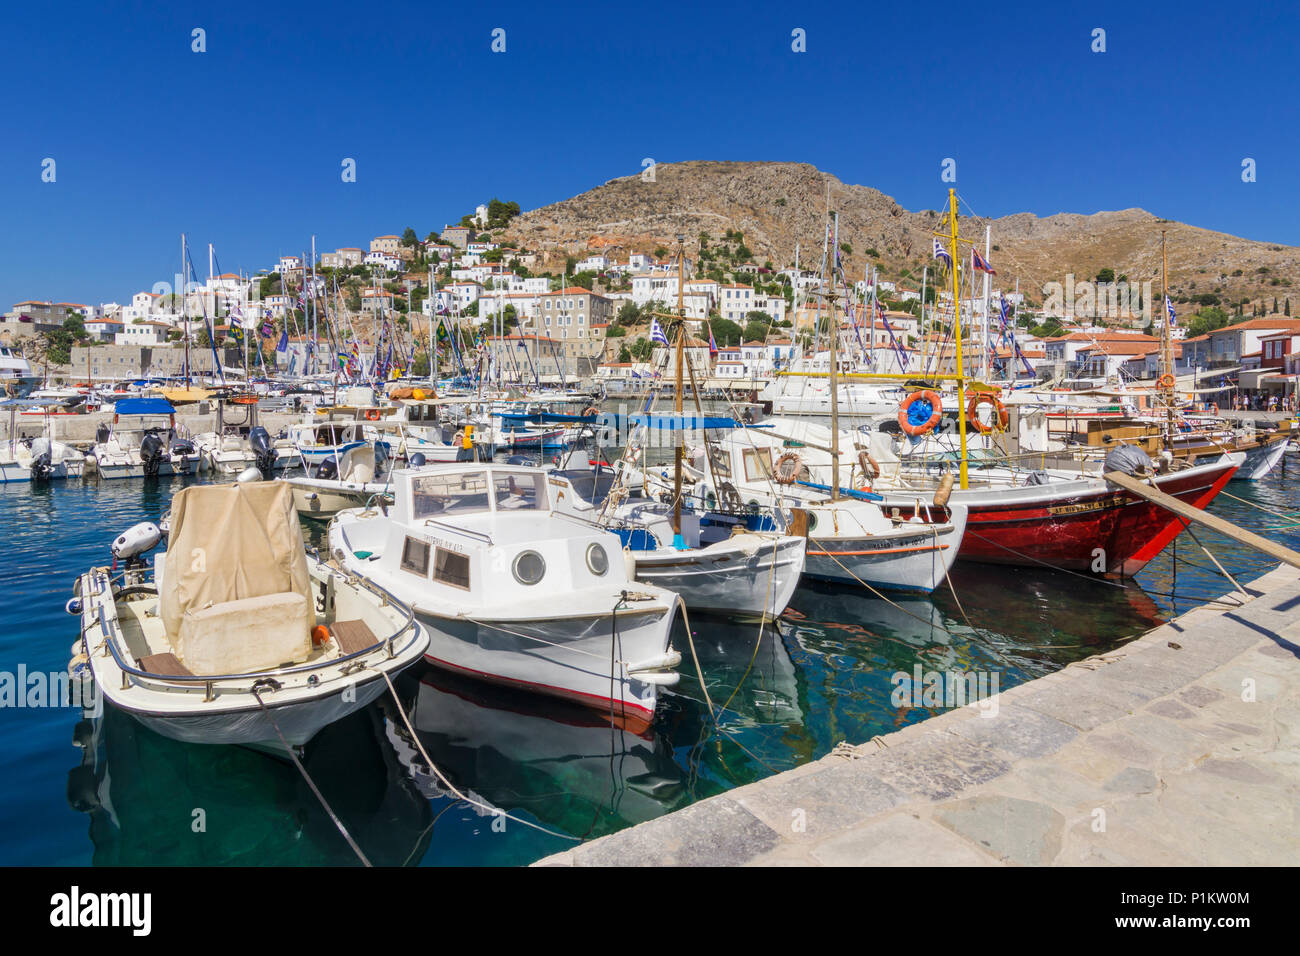 Hydra Town harbour filled with small fishing boats overlooked by the cafe lined waterfront, Hydra, Greece - Stock Image